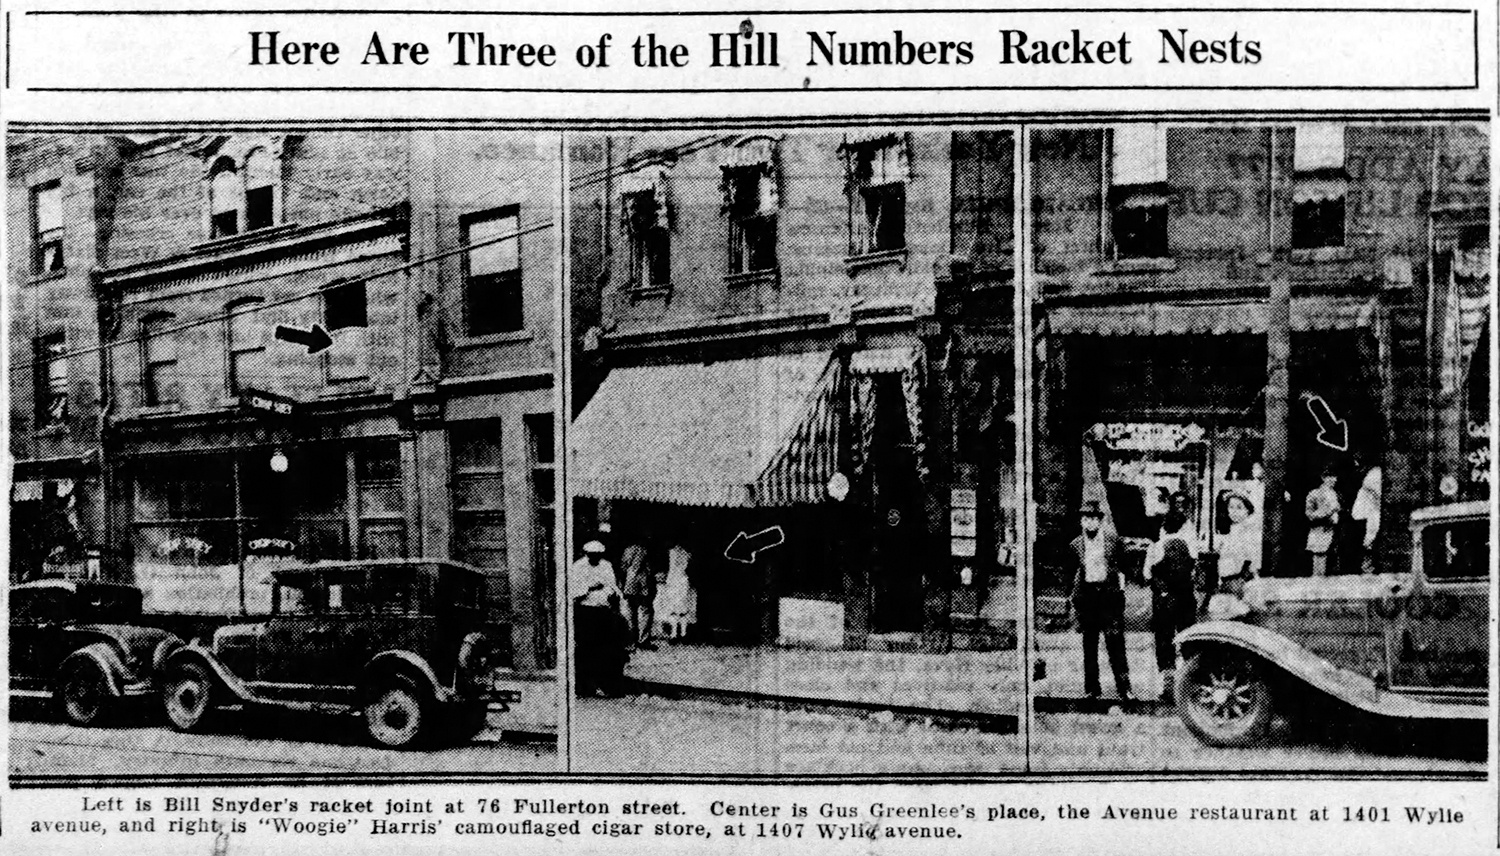 Hill District numbers racket sites. Bill Snyder's location remained active while he was living in the Upper Hill bungalow. Pittsburgh Post-Gazette, Sept. 26, 1930.